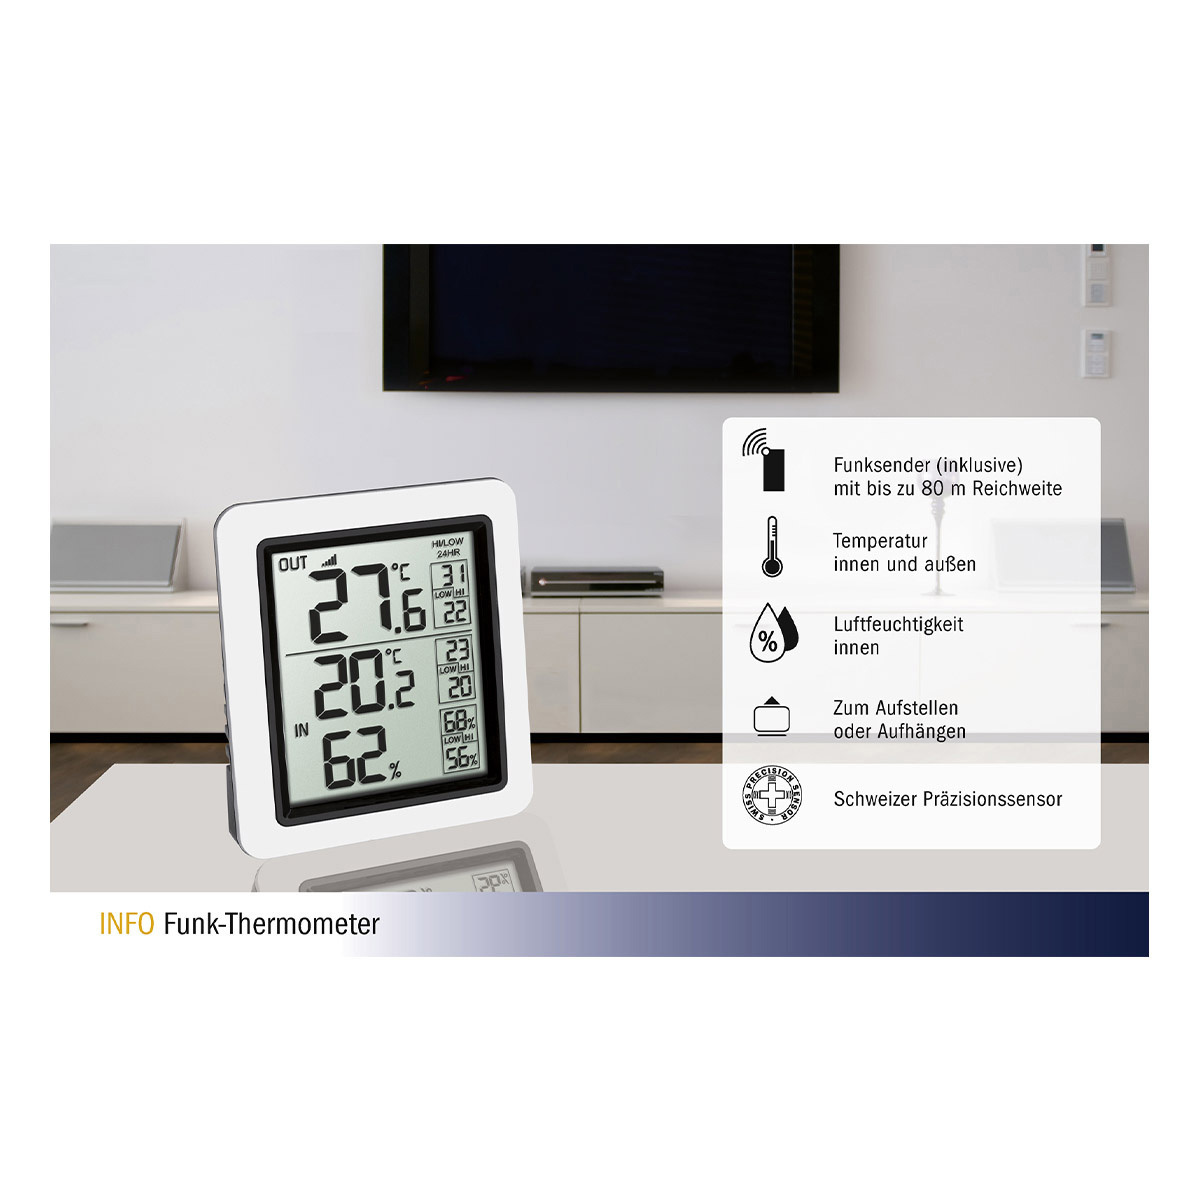 30-3065-02-funk-thermometer-info-icons-1200x1200px.jpg